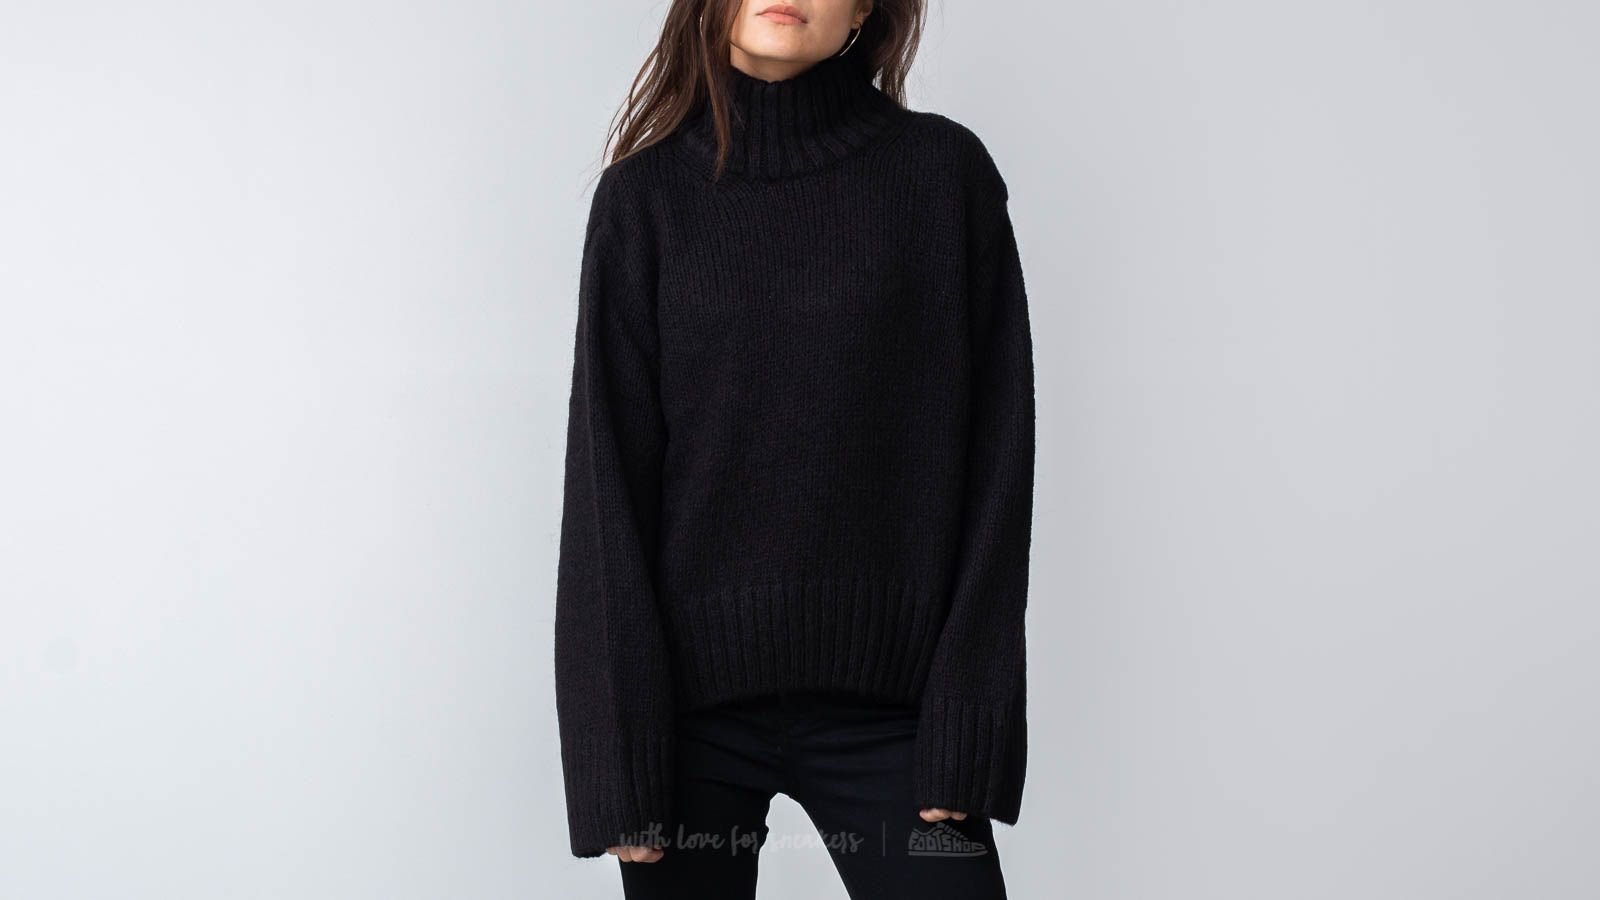 SELECTED Holly Longsleeve Knit Highneck Pullover